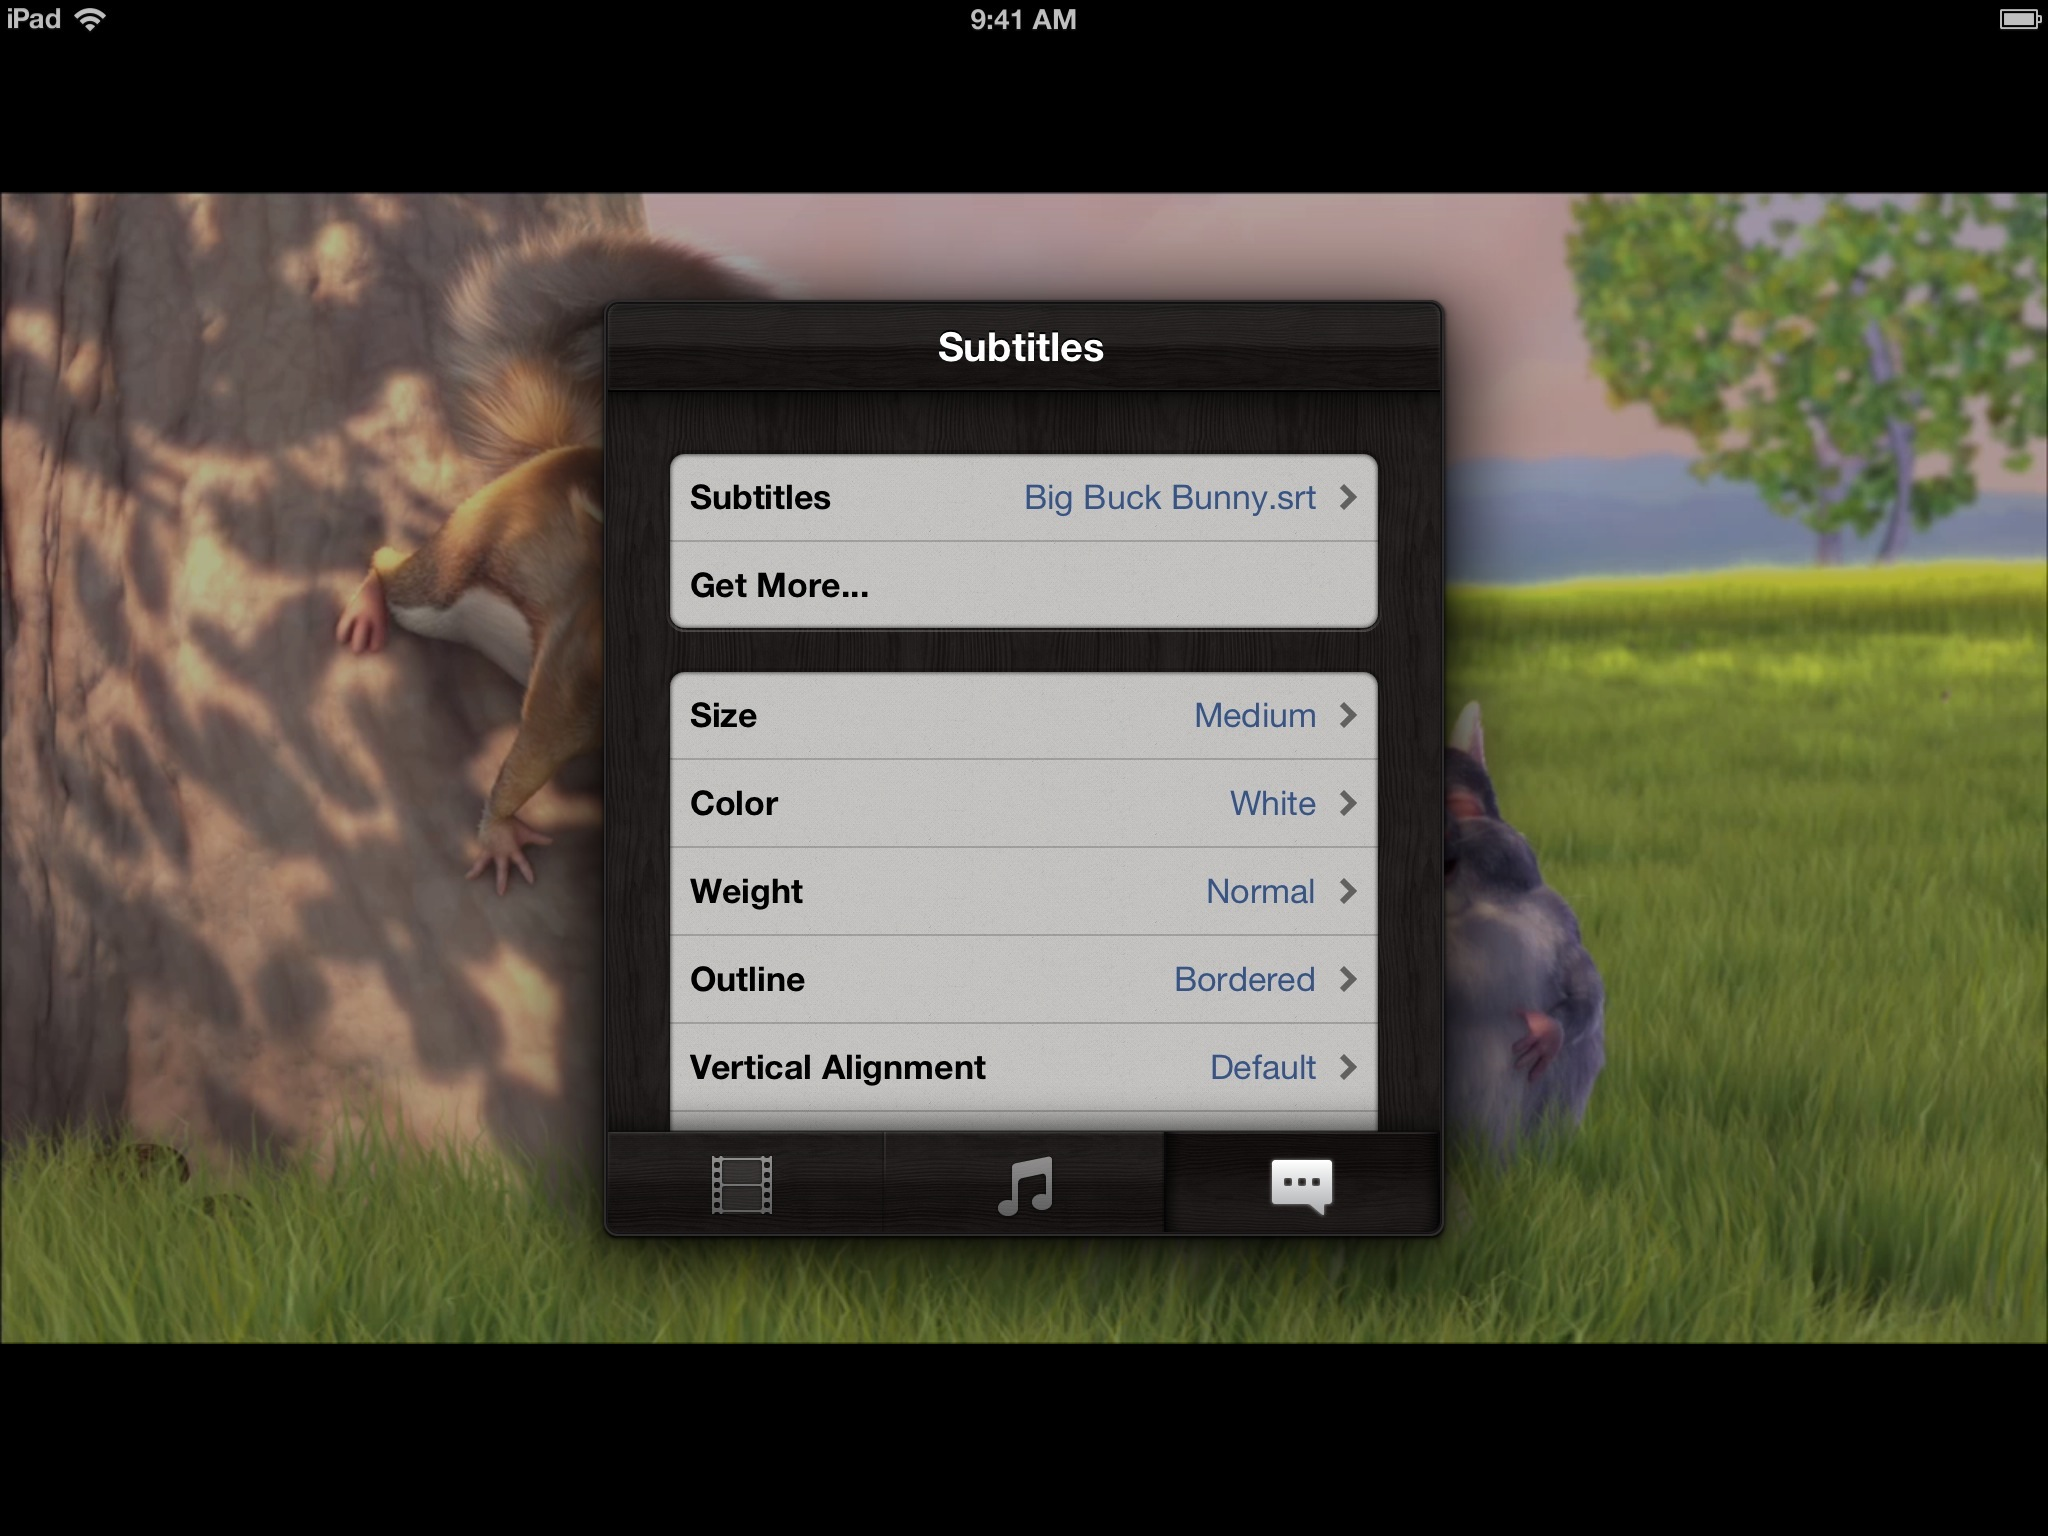 Infuse 1.0 for iOS (iPad screenshot, Subtitles)